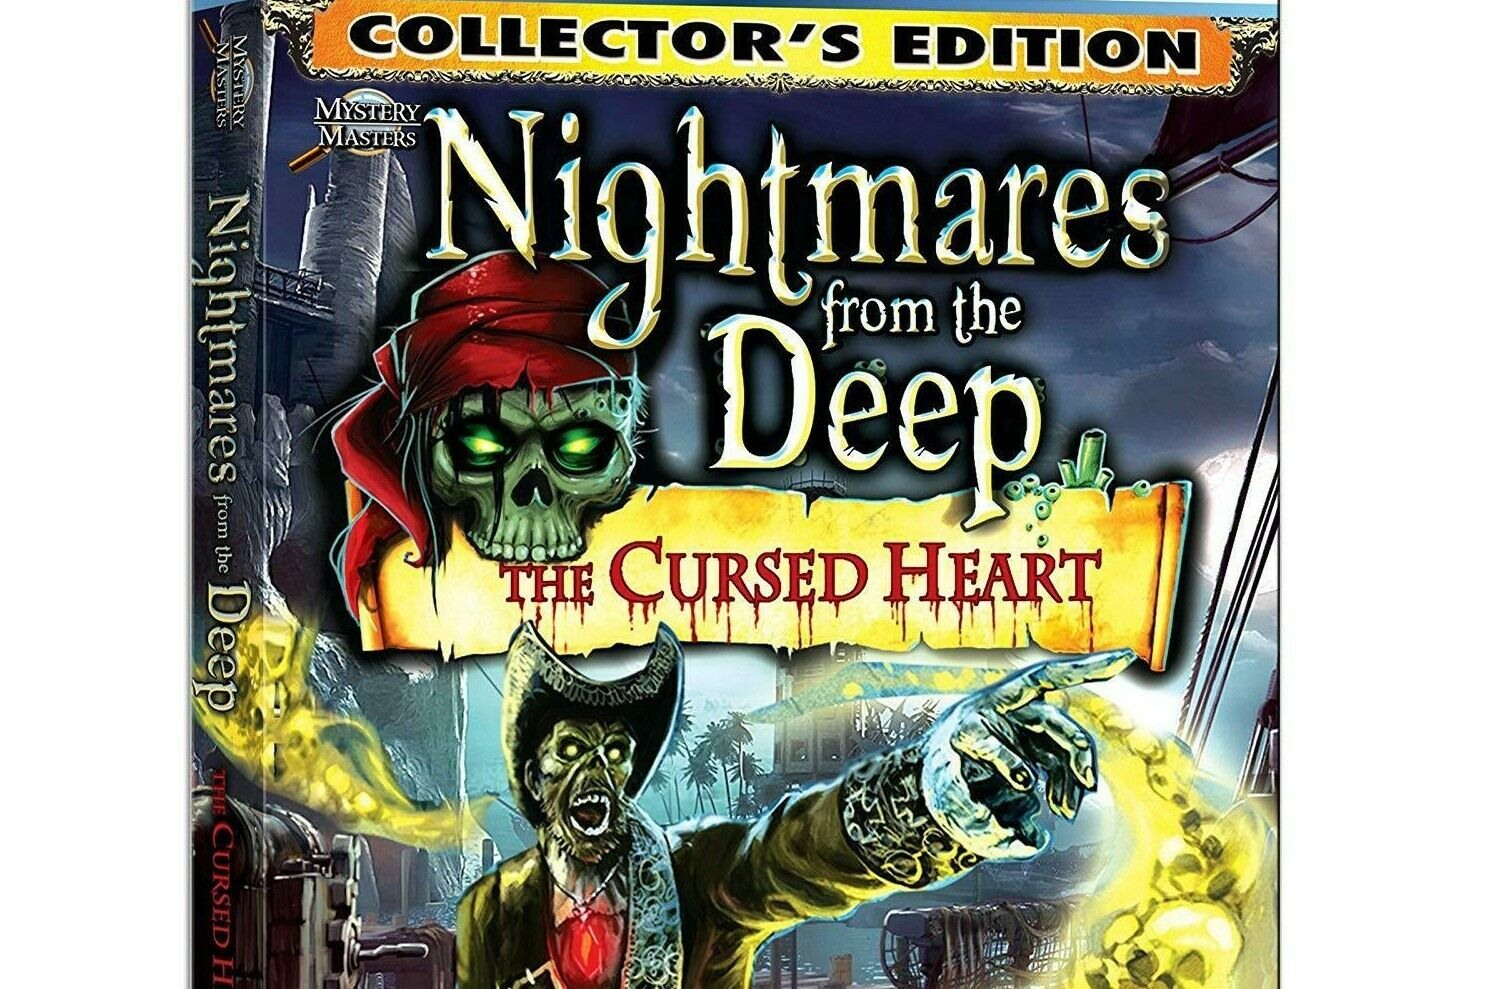 Computer Games - Nightmares From The Deep The Cursed Heart PC Games Windows 10 8 7 XP Computer